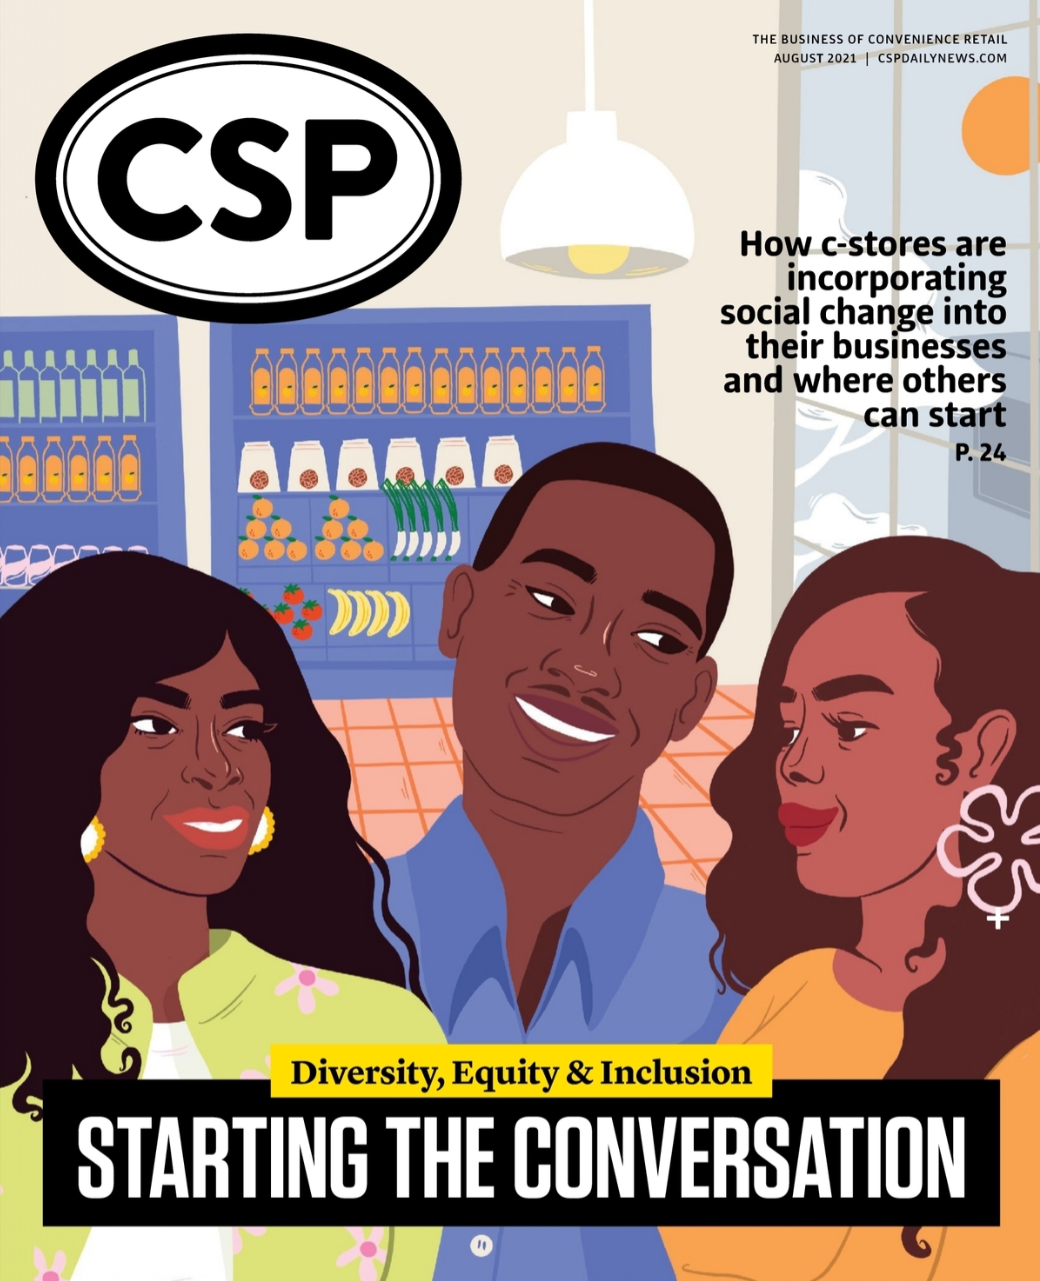 CSP Daily News Magazine Diversity, Equity & Inclusion: Starting the Conversation | August 2021 Issue